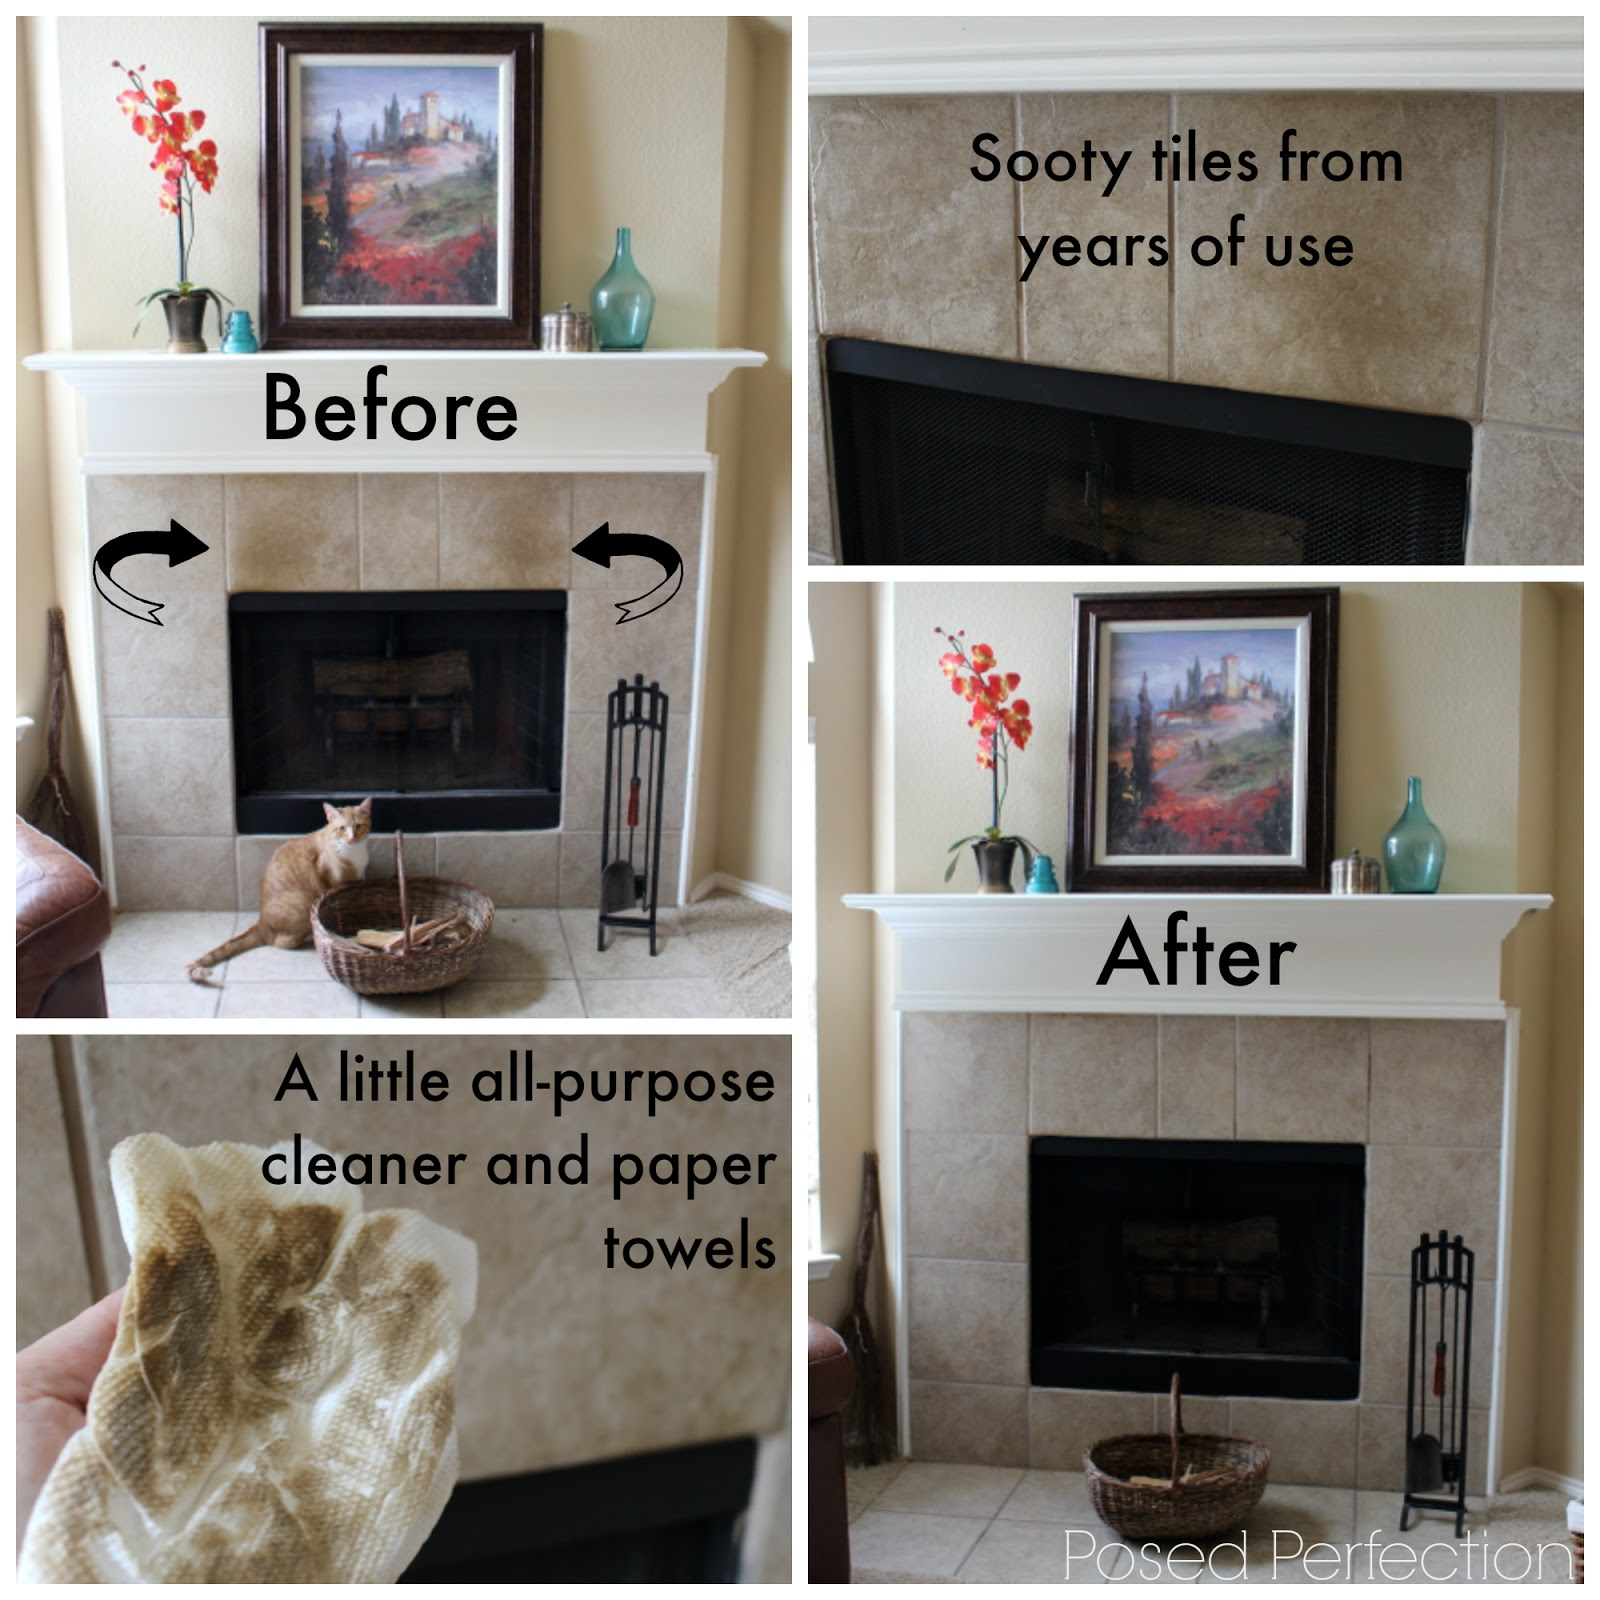 Minimalist Mantel for Summer and Cleaning Soot from Tiles